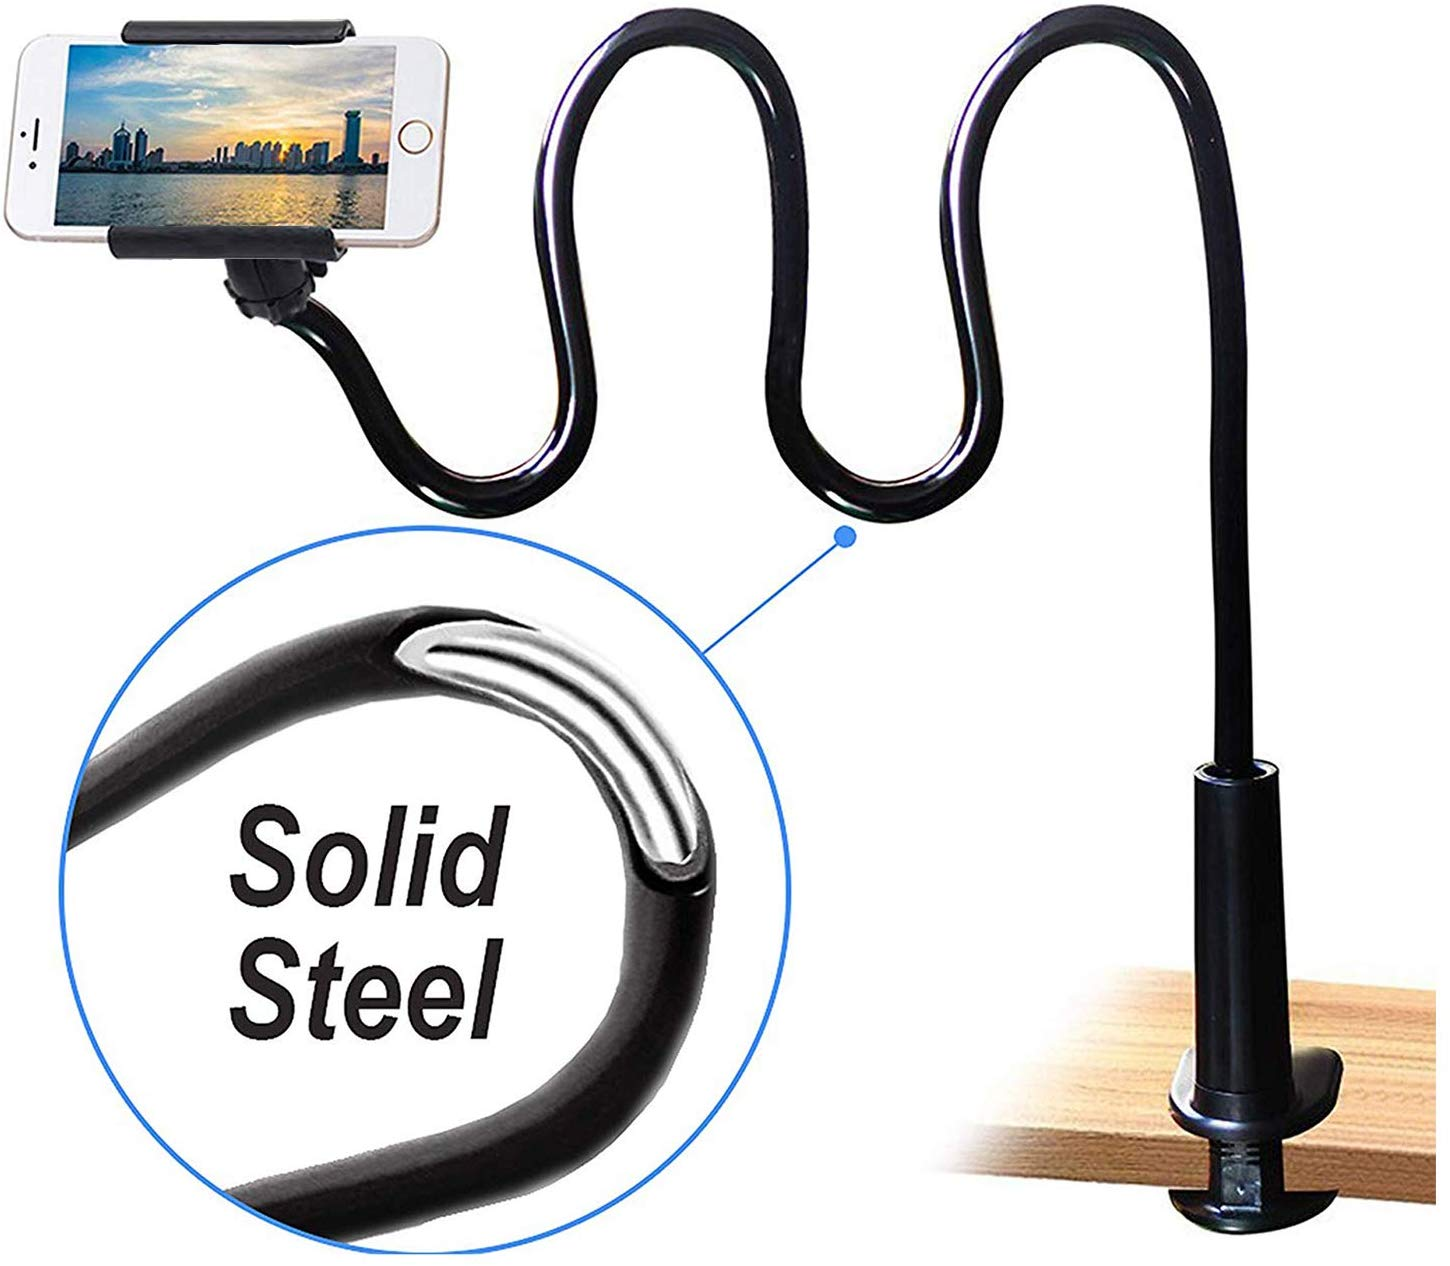 Universal 360 Degree Flexible Lazy Mount Tablet Phone Holder